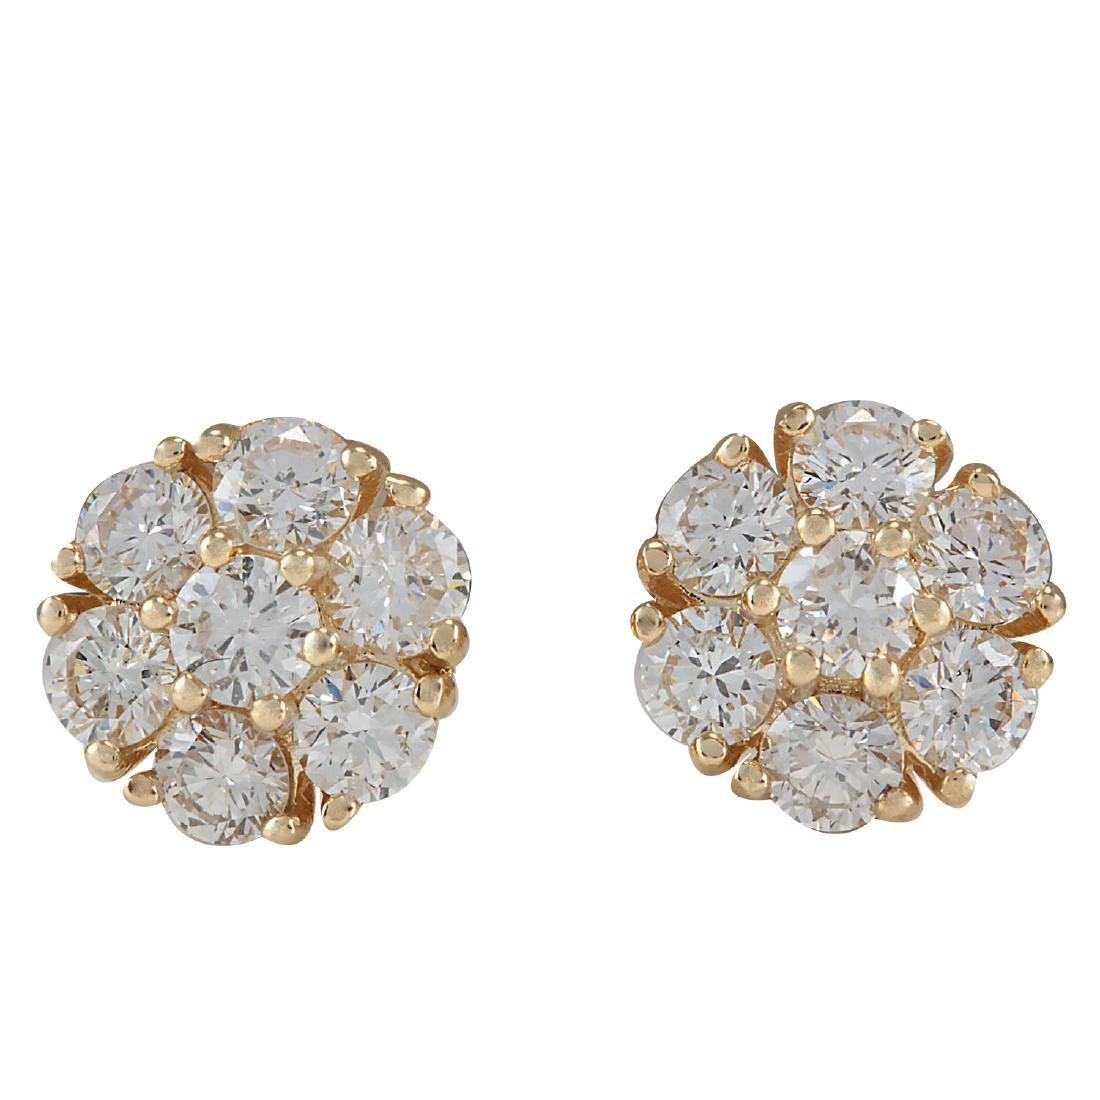 1.45CTW Natural Diamond Earrings 18K Solid Yellow Gold